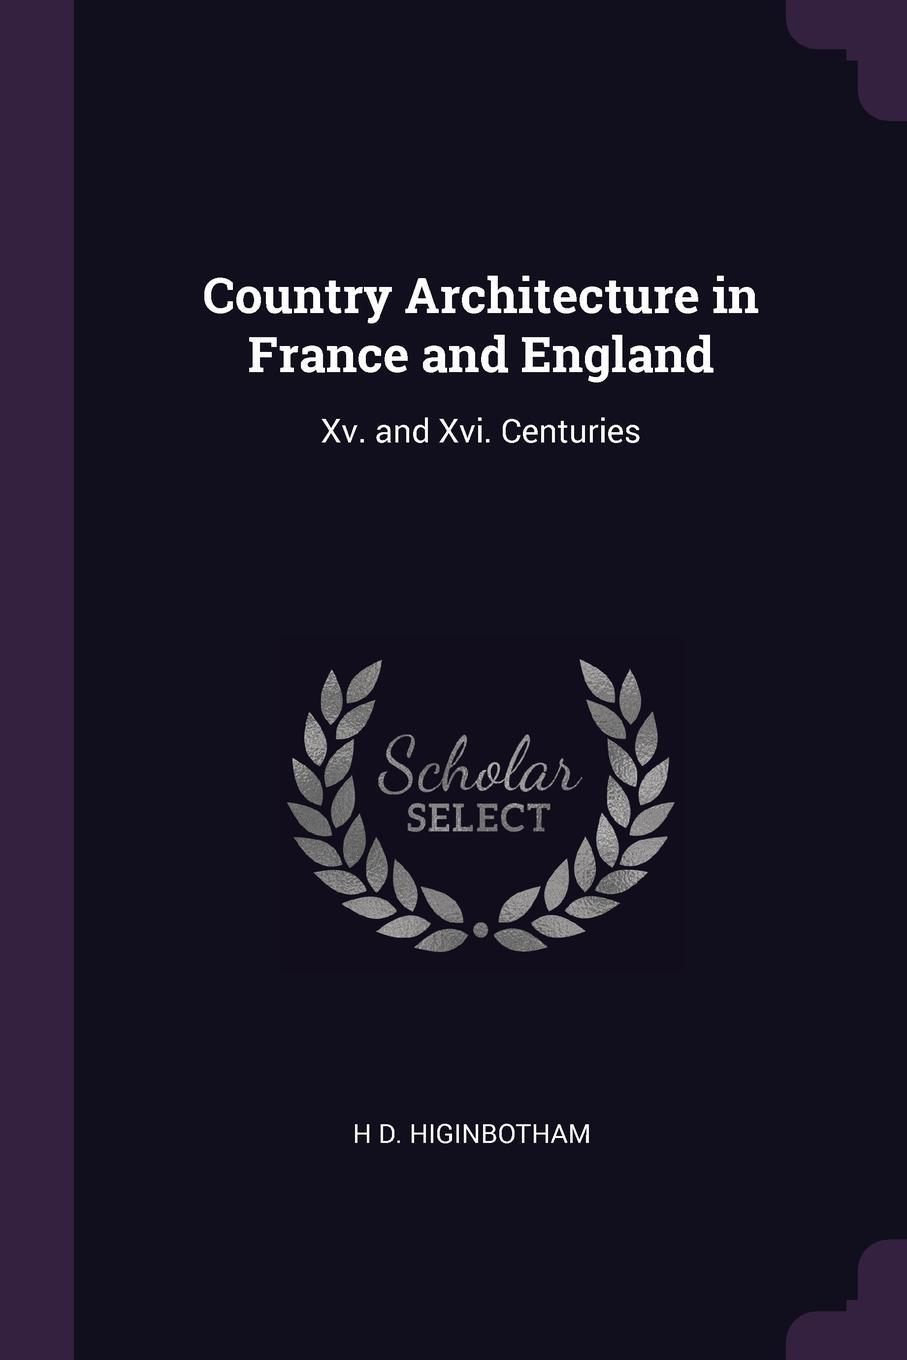 H D. Higinbotham. Country Architecture in France and England. Xv. and Xvi. Centuries